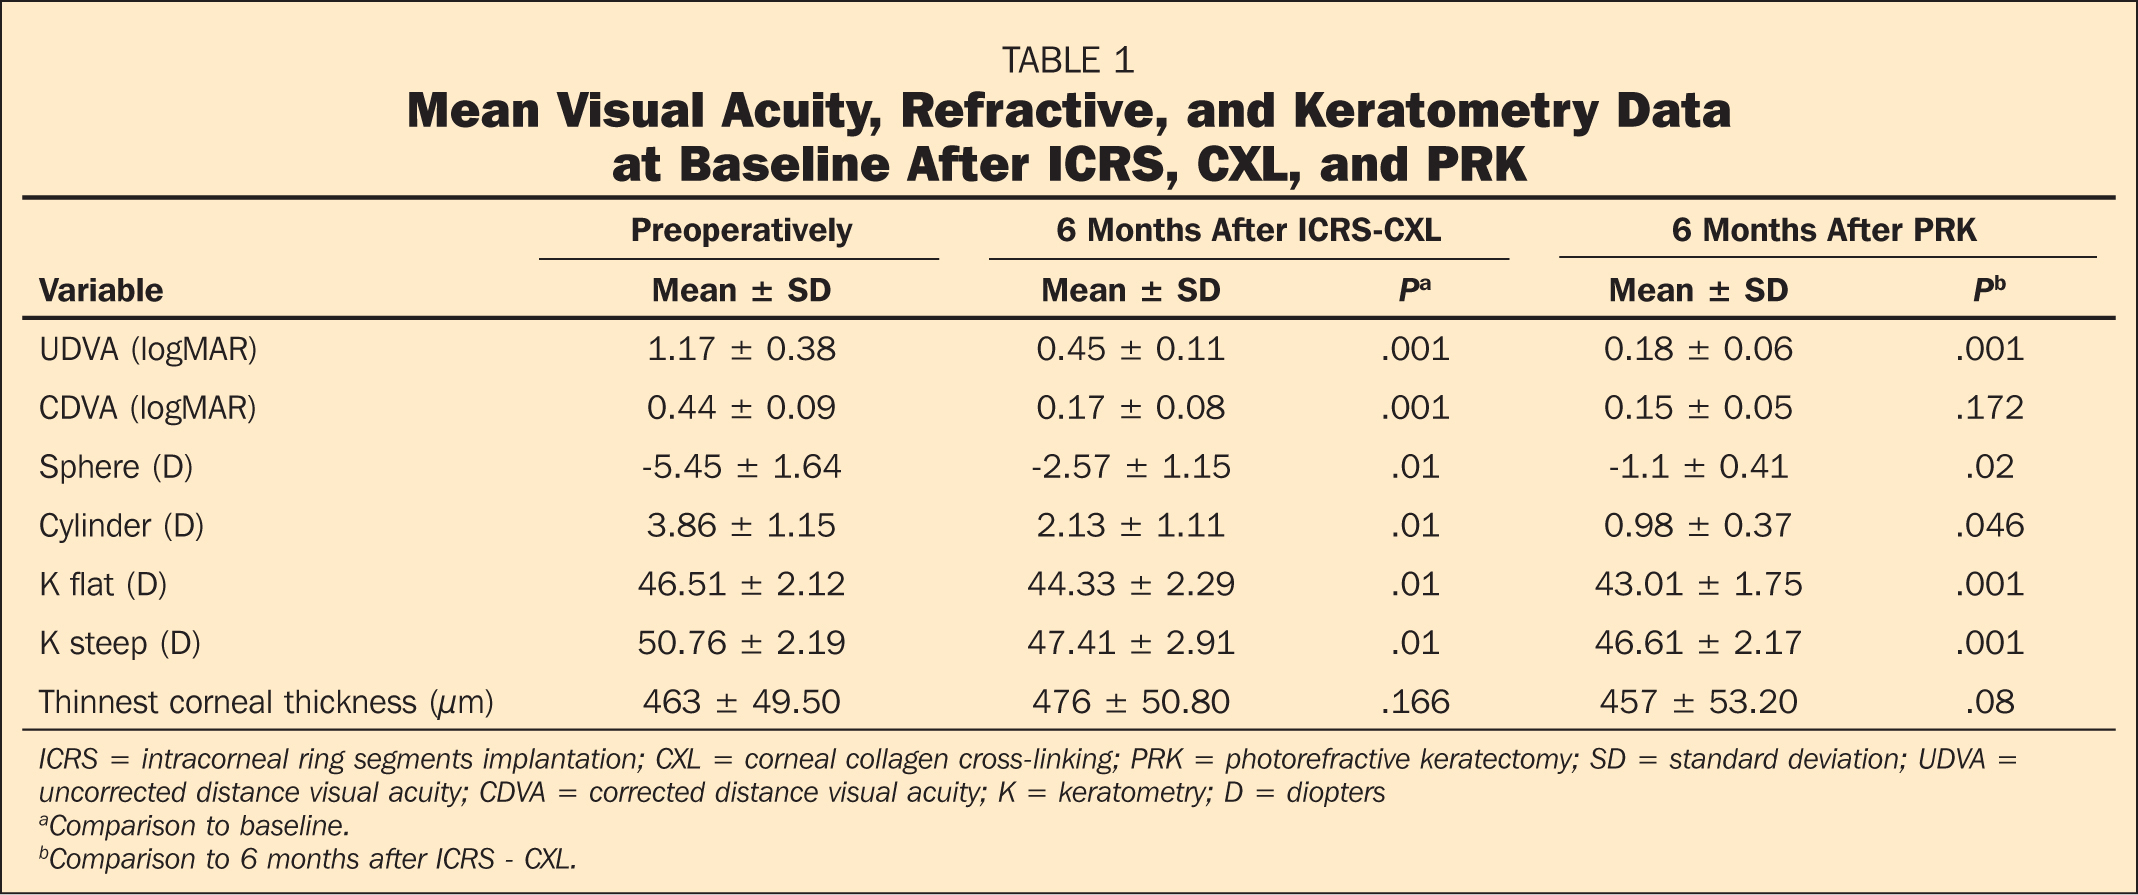 Mean Visual Acuity, Refractive, and Keratometry Data at Baseline After ICRS, CXL, and PRK